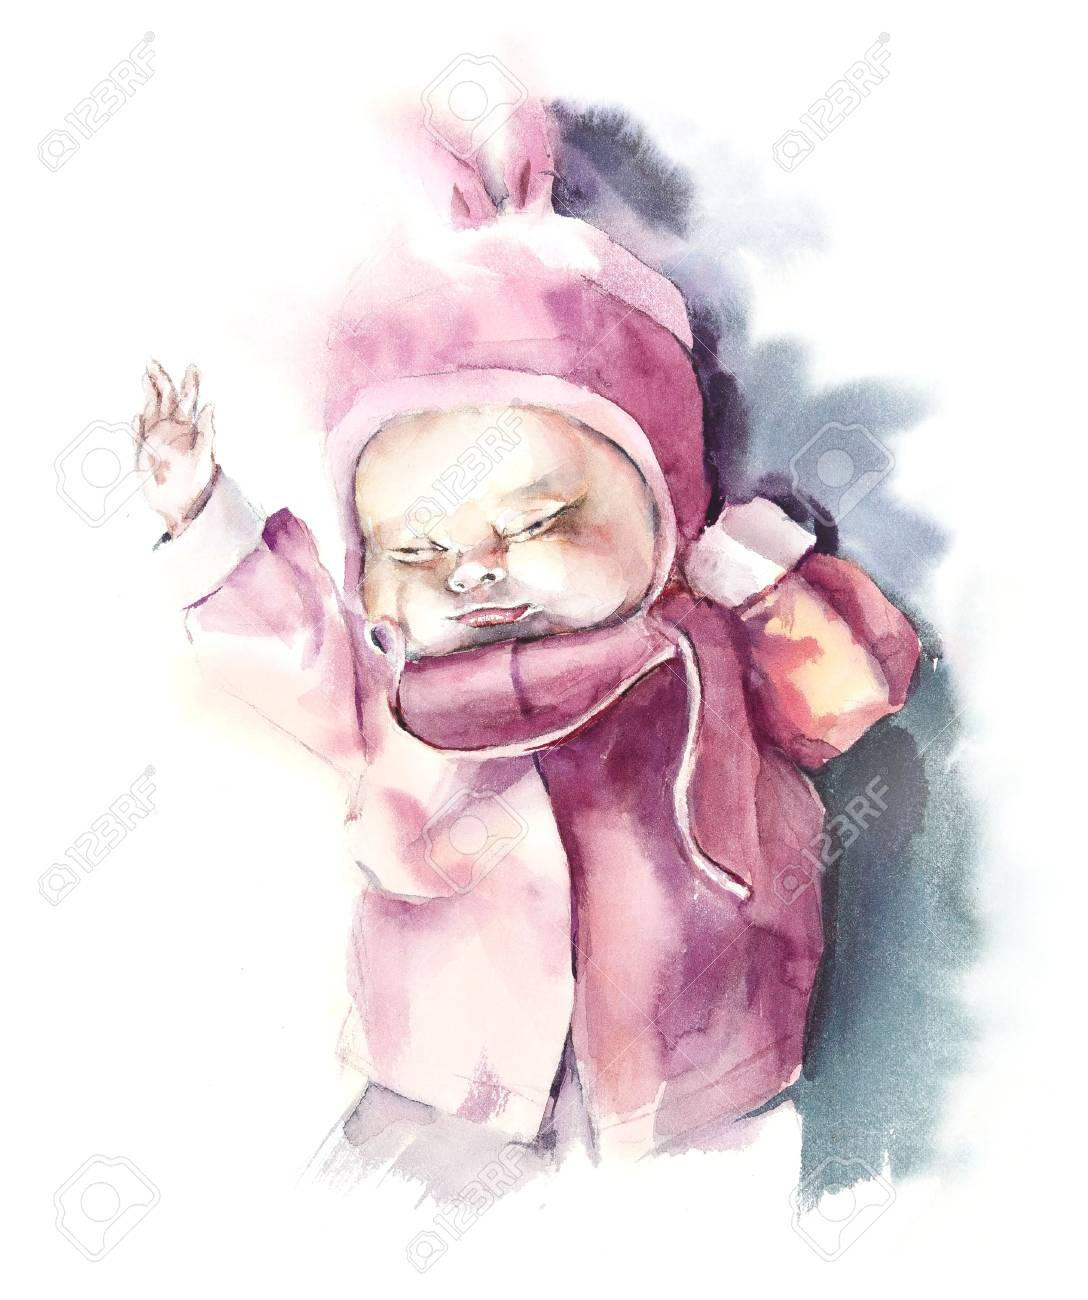 Baby girl watercolor hand drawing illustration stock illustration 107437692